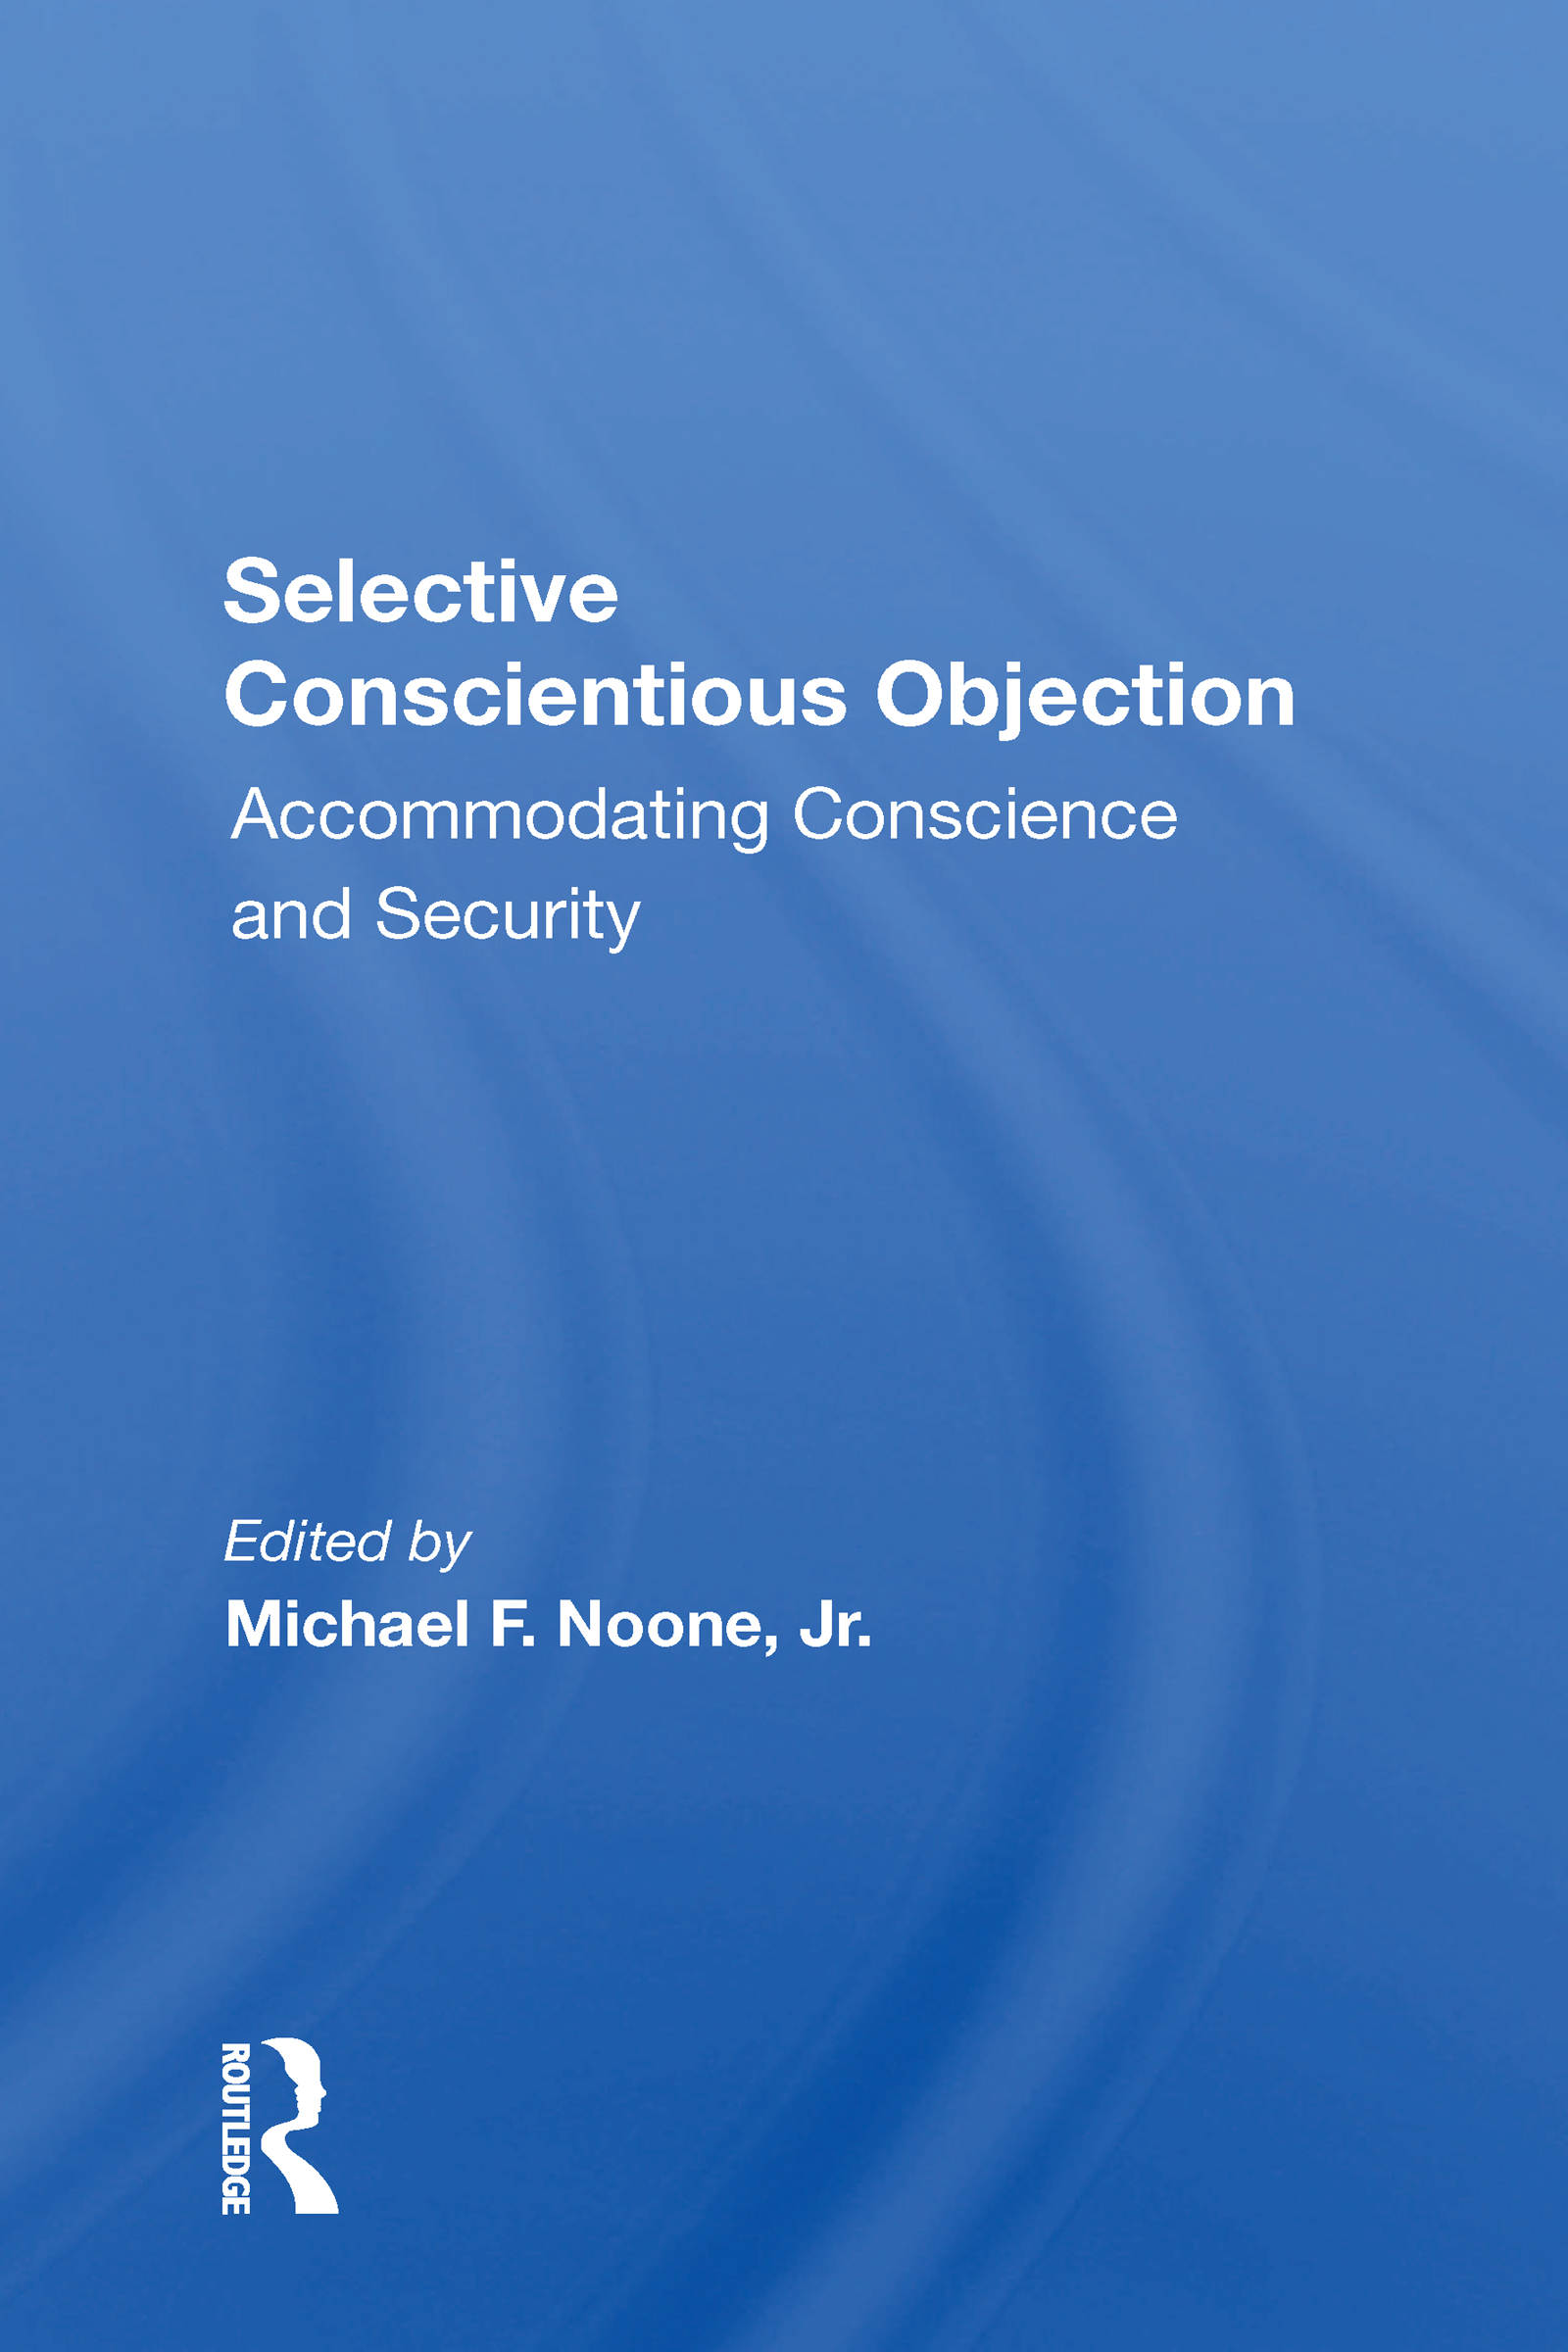 Selective Conscientious Objection